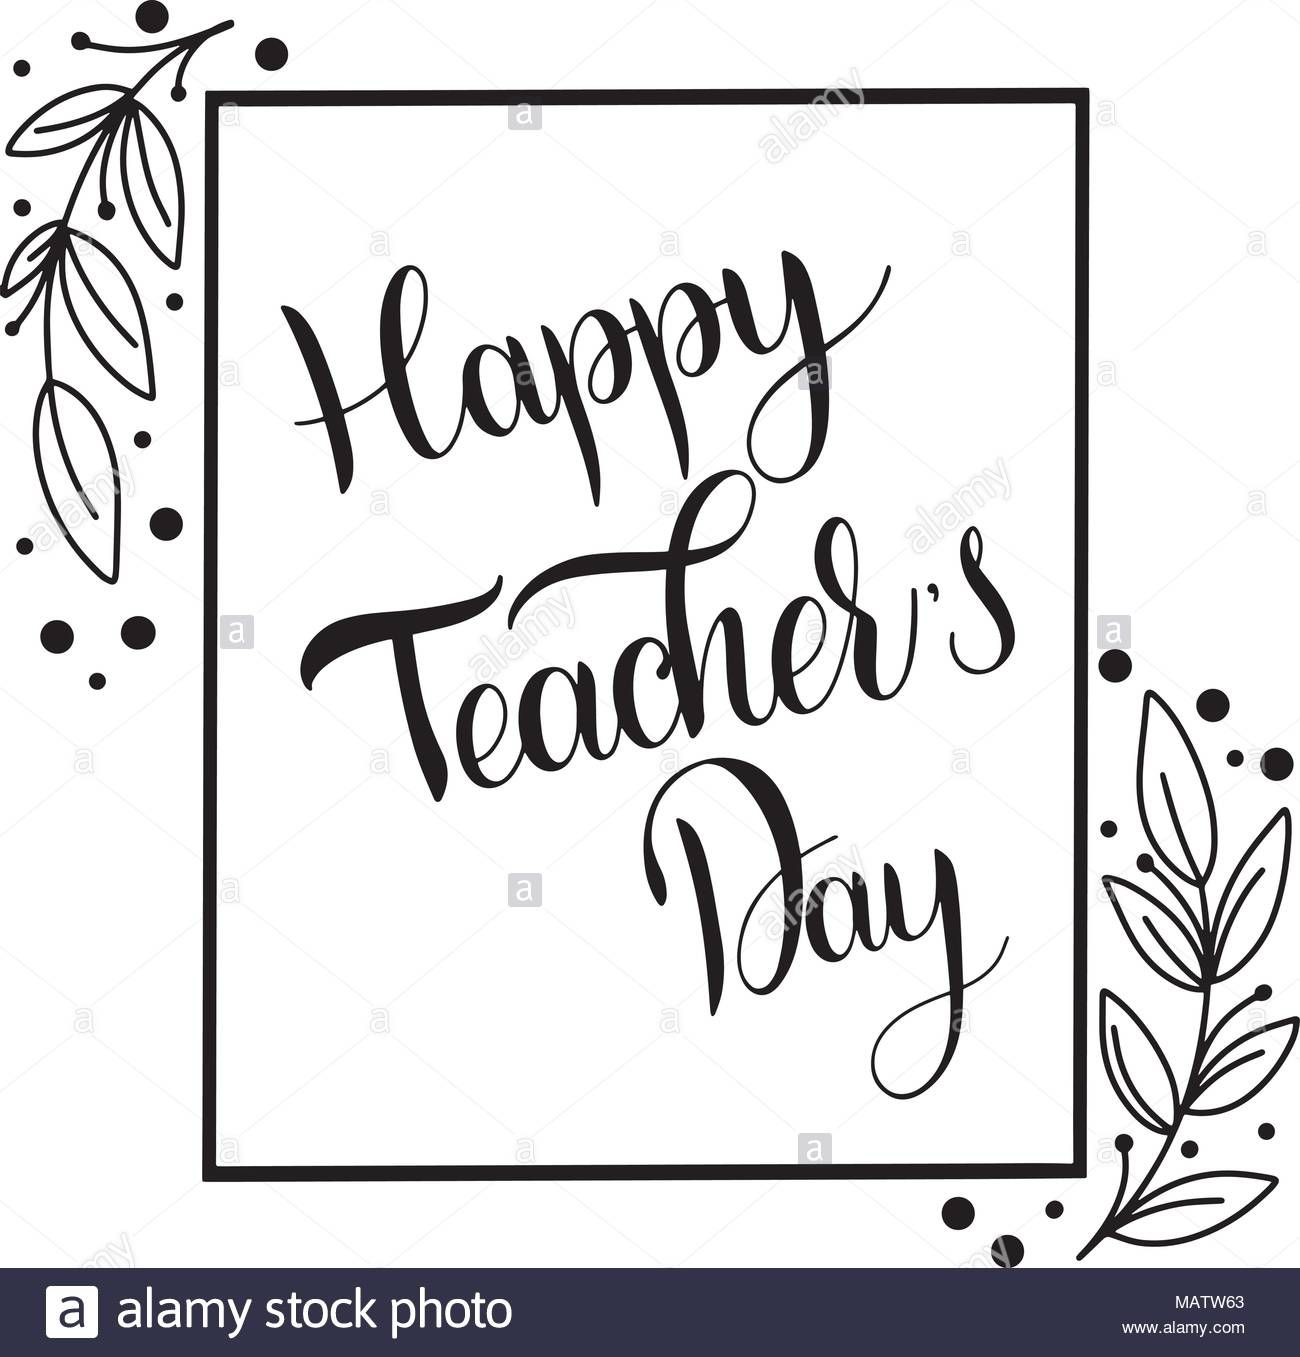 Download This Stock Vector Happy Teacher Day Lettering Elements